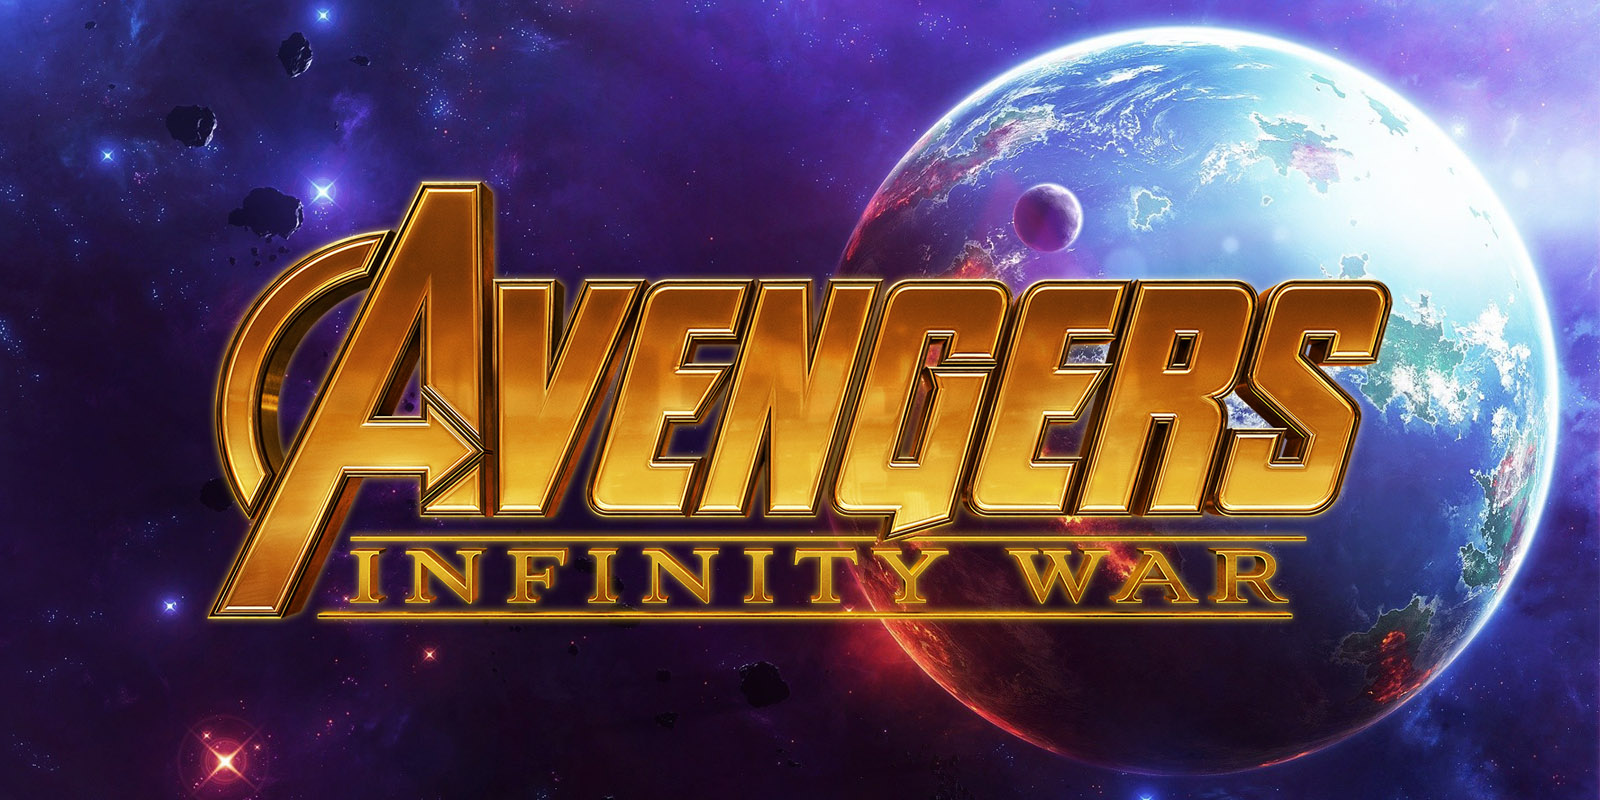 How Avengers 4 Is and Isn't Infinity War Part 2